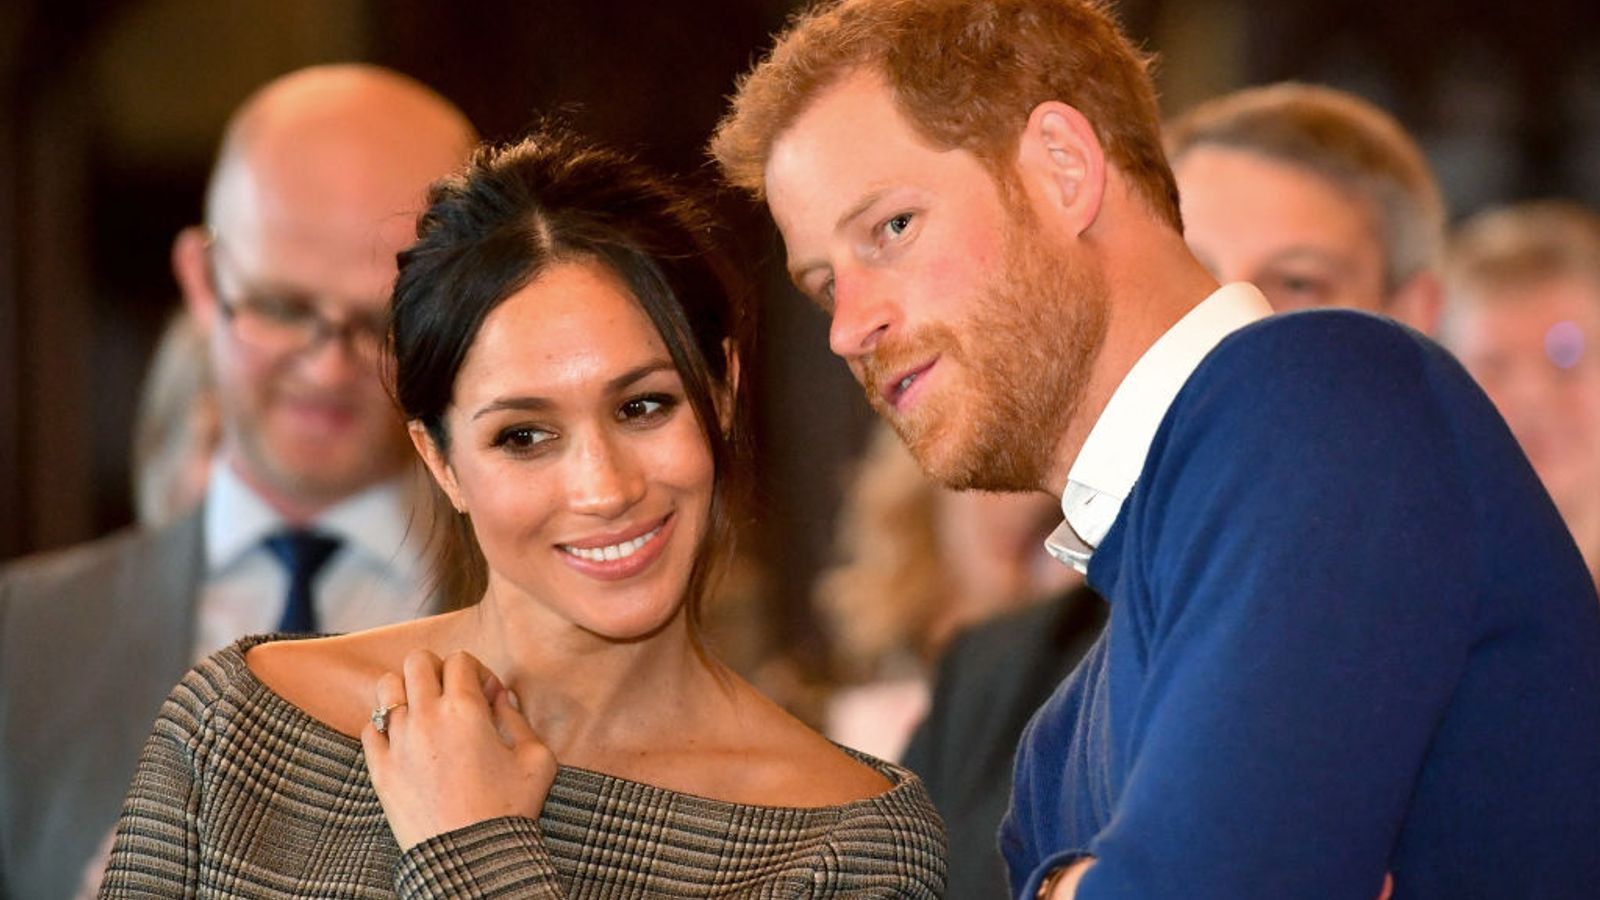 Prince Harry says 'living in Meghan's shoes' taught him unconscious racial bias exists - Sky News